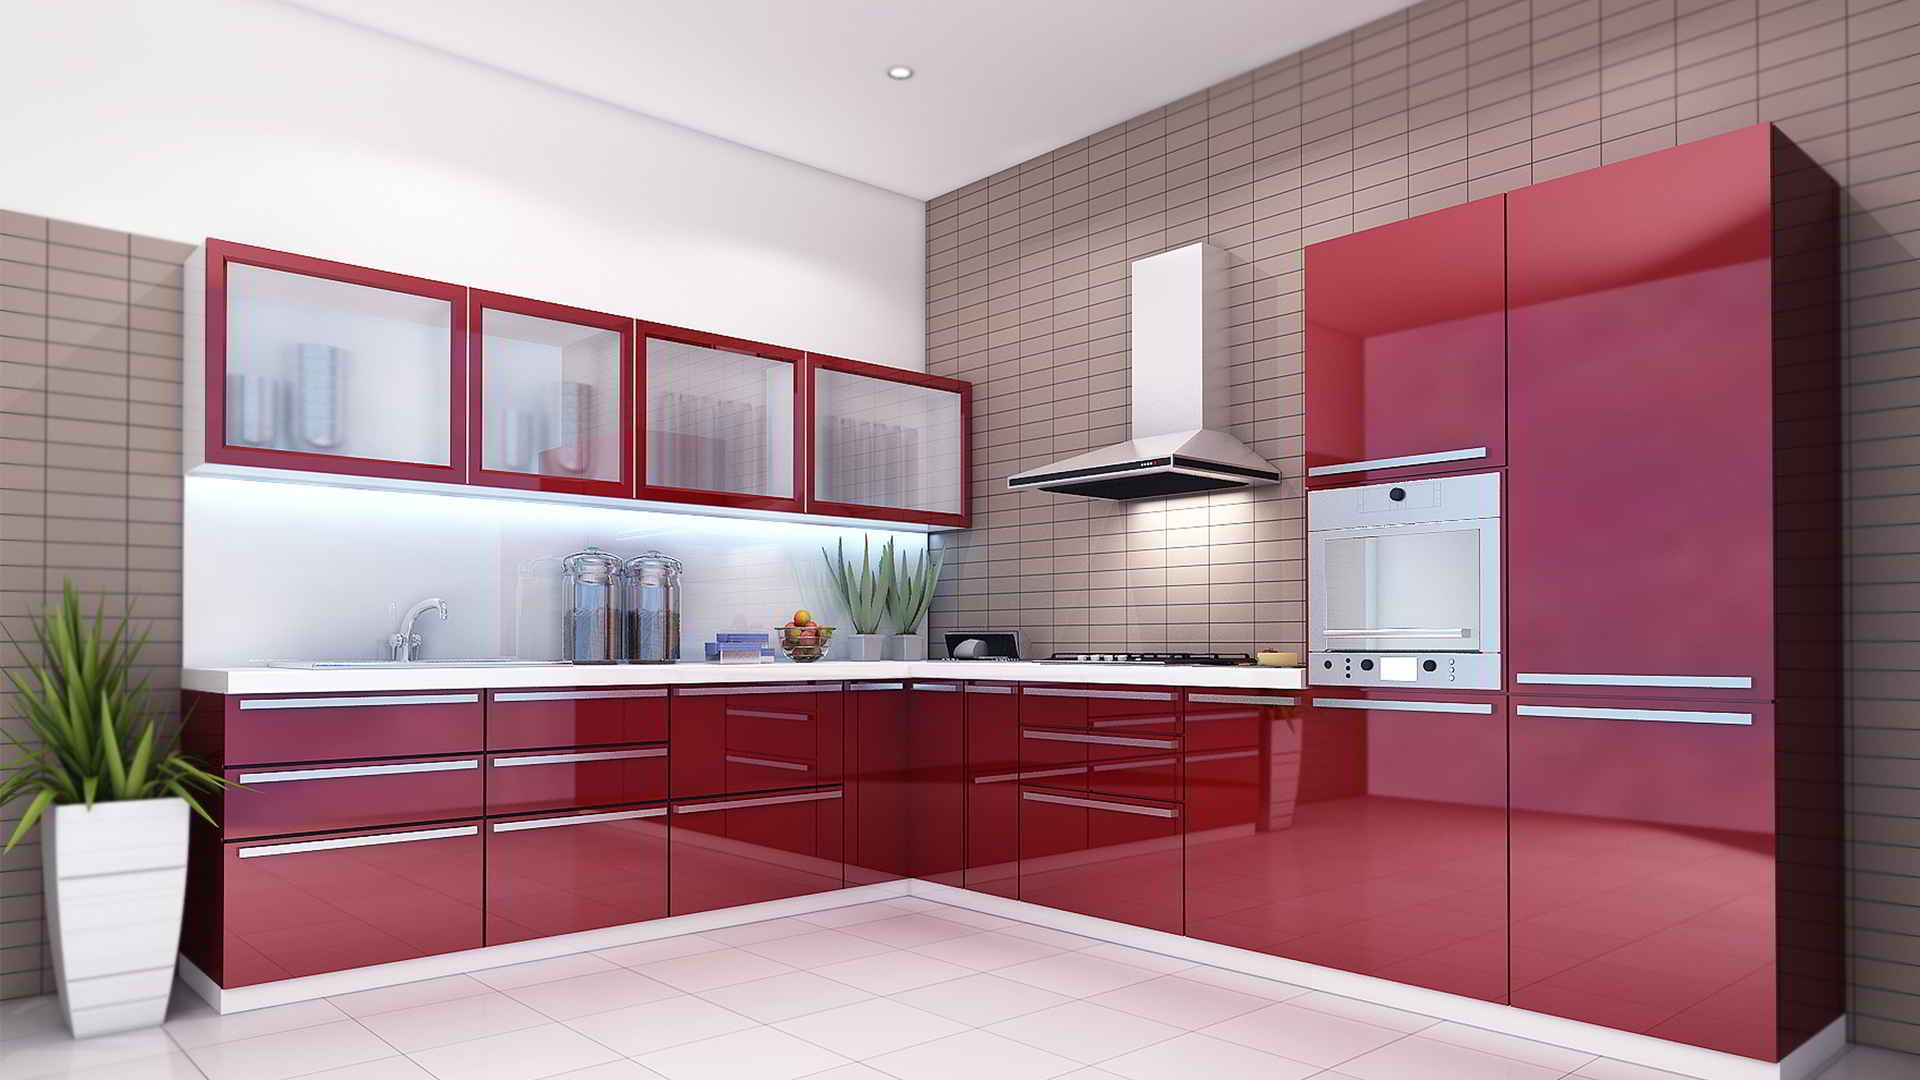 Kitchen Happens To Be The Very Important Place For Which You Need To Keep  It Clean And Hygiene. If You Wish To Get Modular Kitchen Interior Solutions  It Is ...